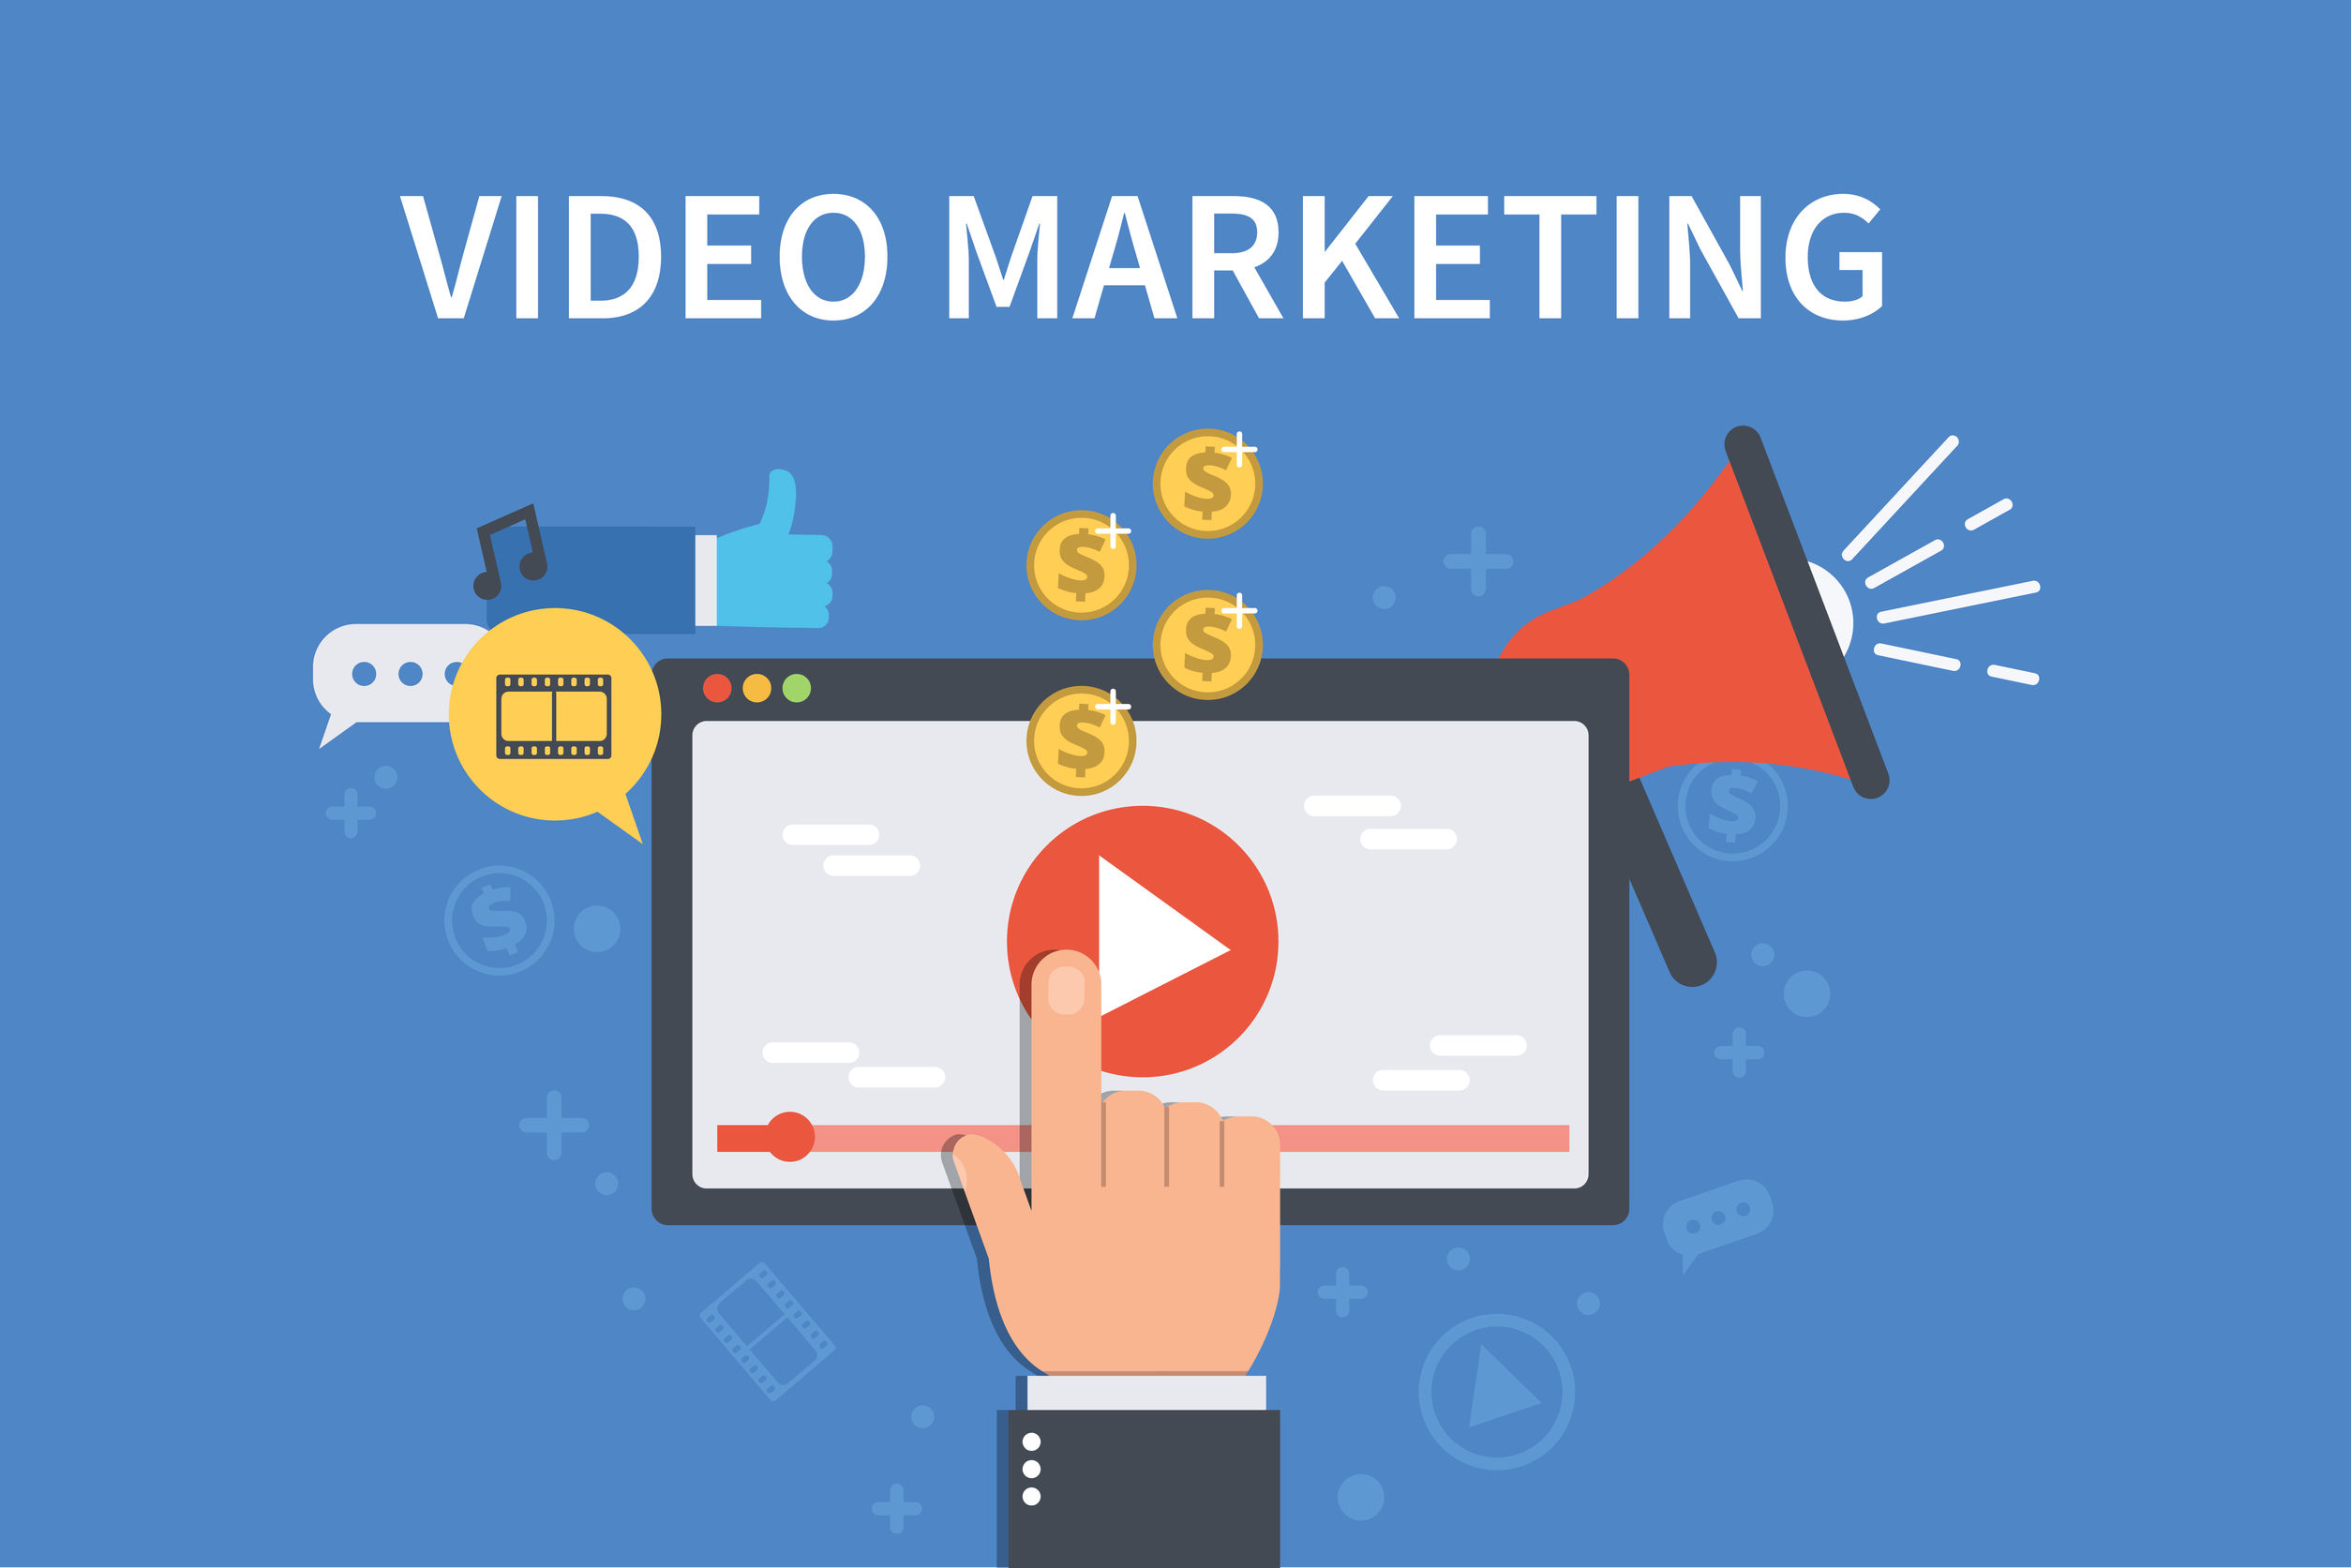 Why B2B Video Marketing Should Be Your Top Priority for 2018